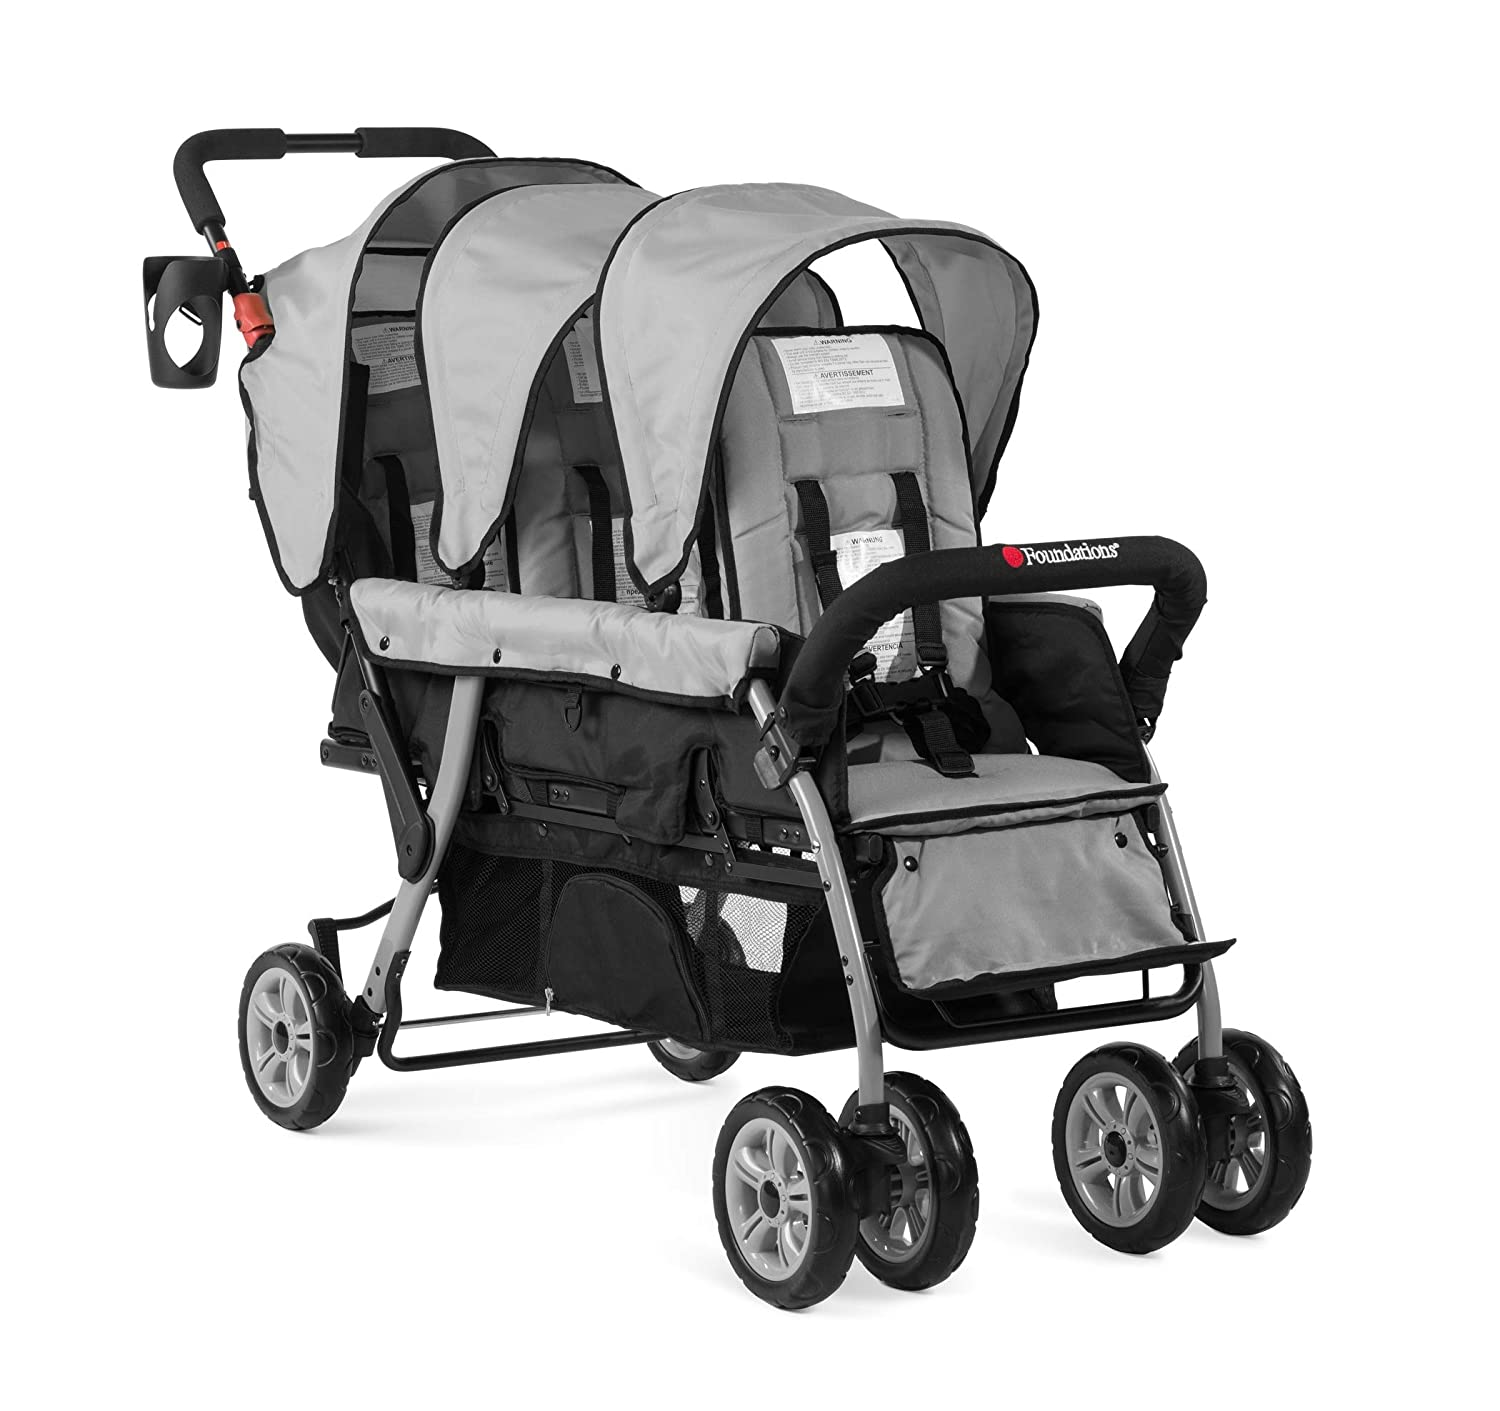 Foundations Triple Sport 3-Seat Tandem Stroller Canopy 5-P High quality SALENEW very popular with